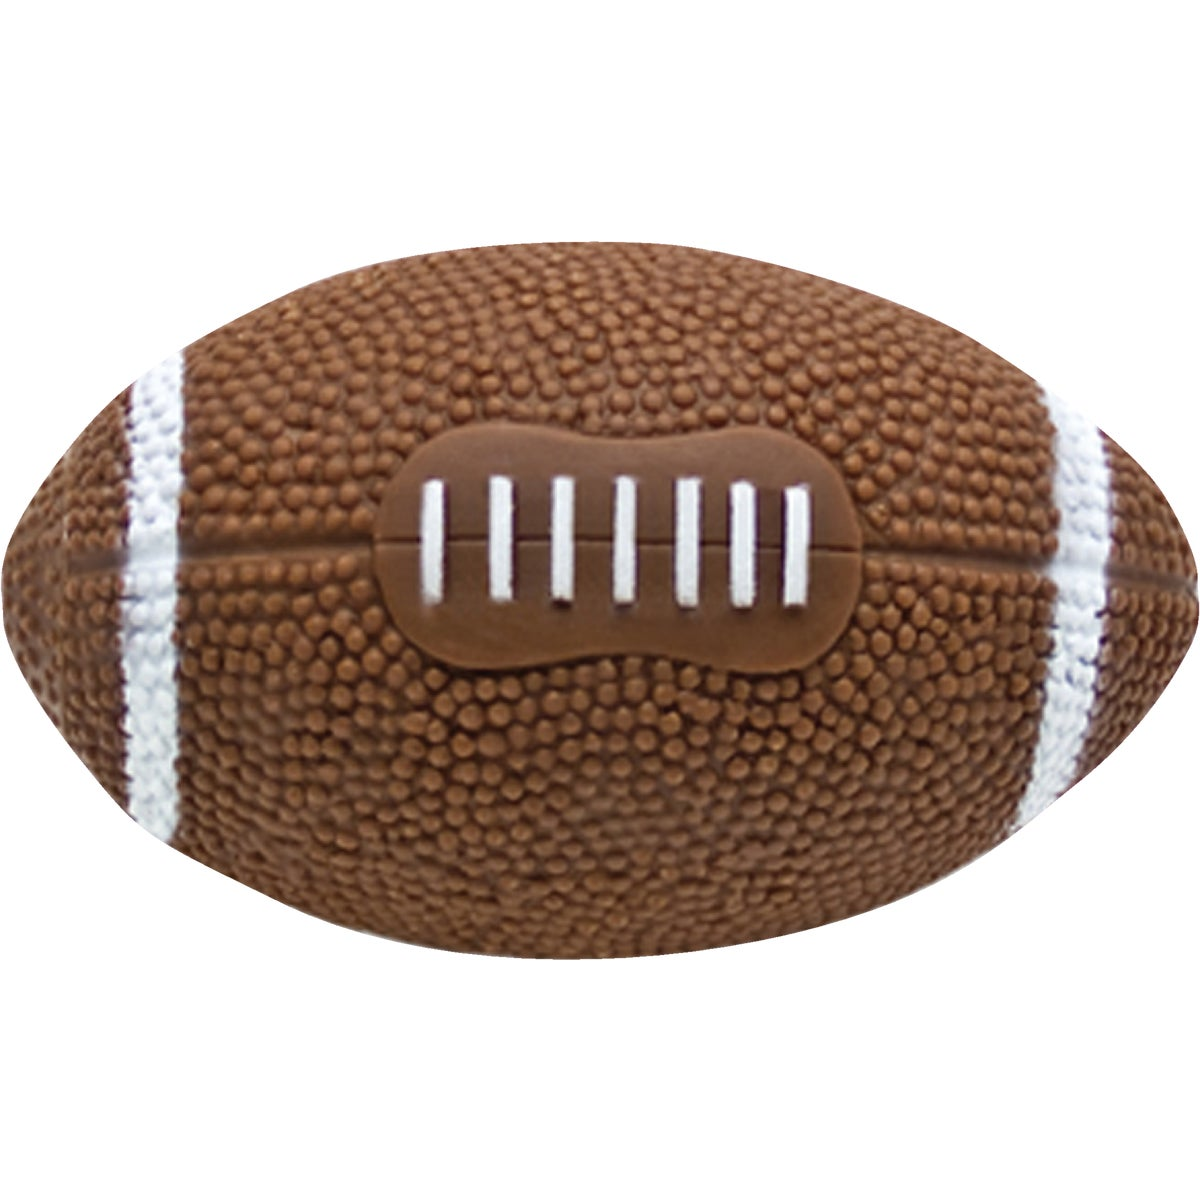 Westminster Pet 20037 Vinyl Dog Toys-FOOTBALL DOG TOY at Sears.com